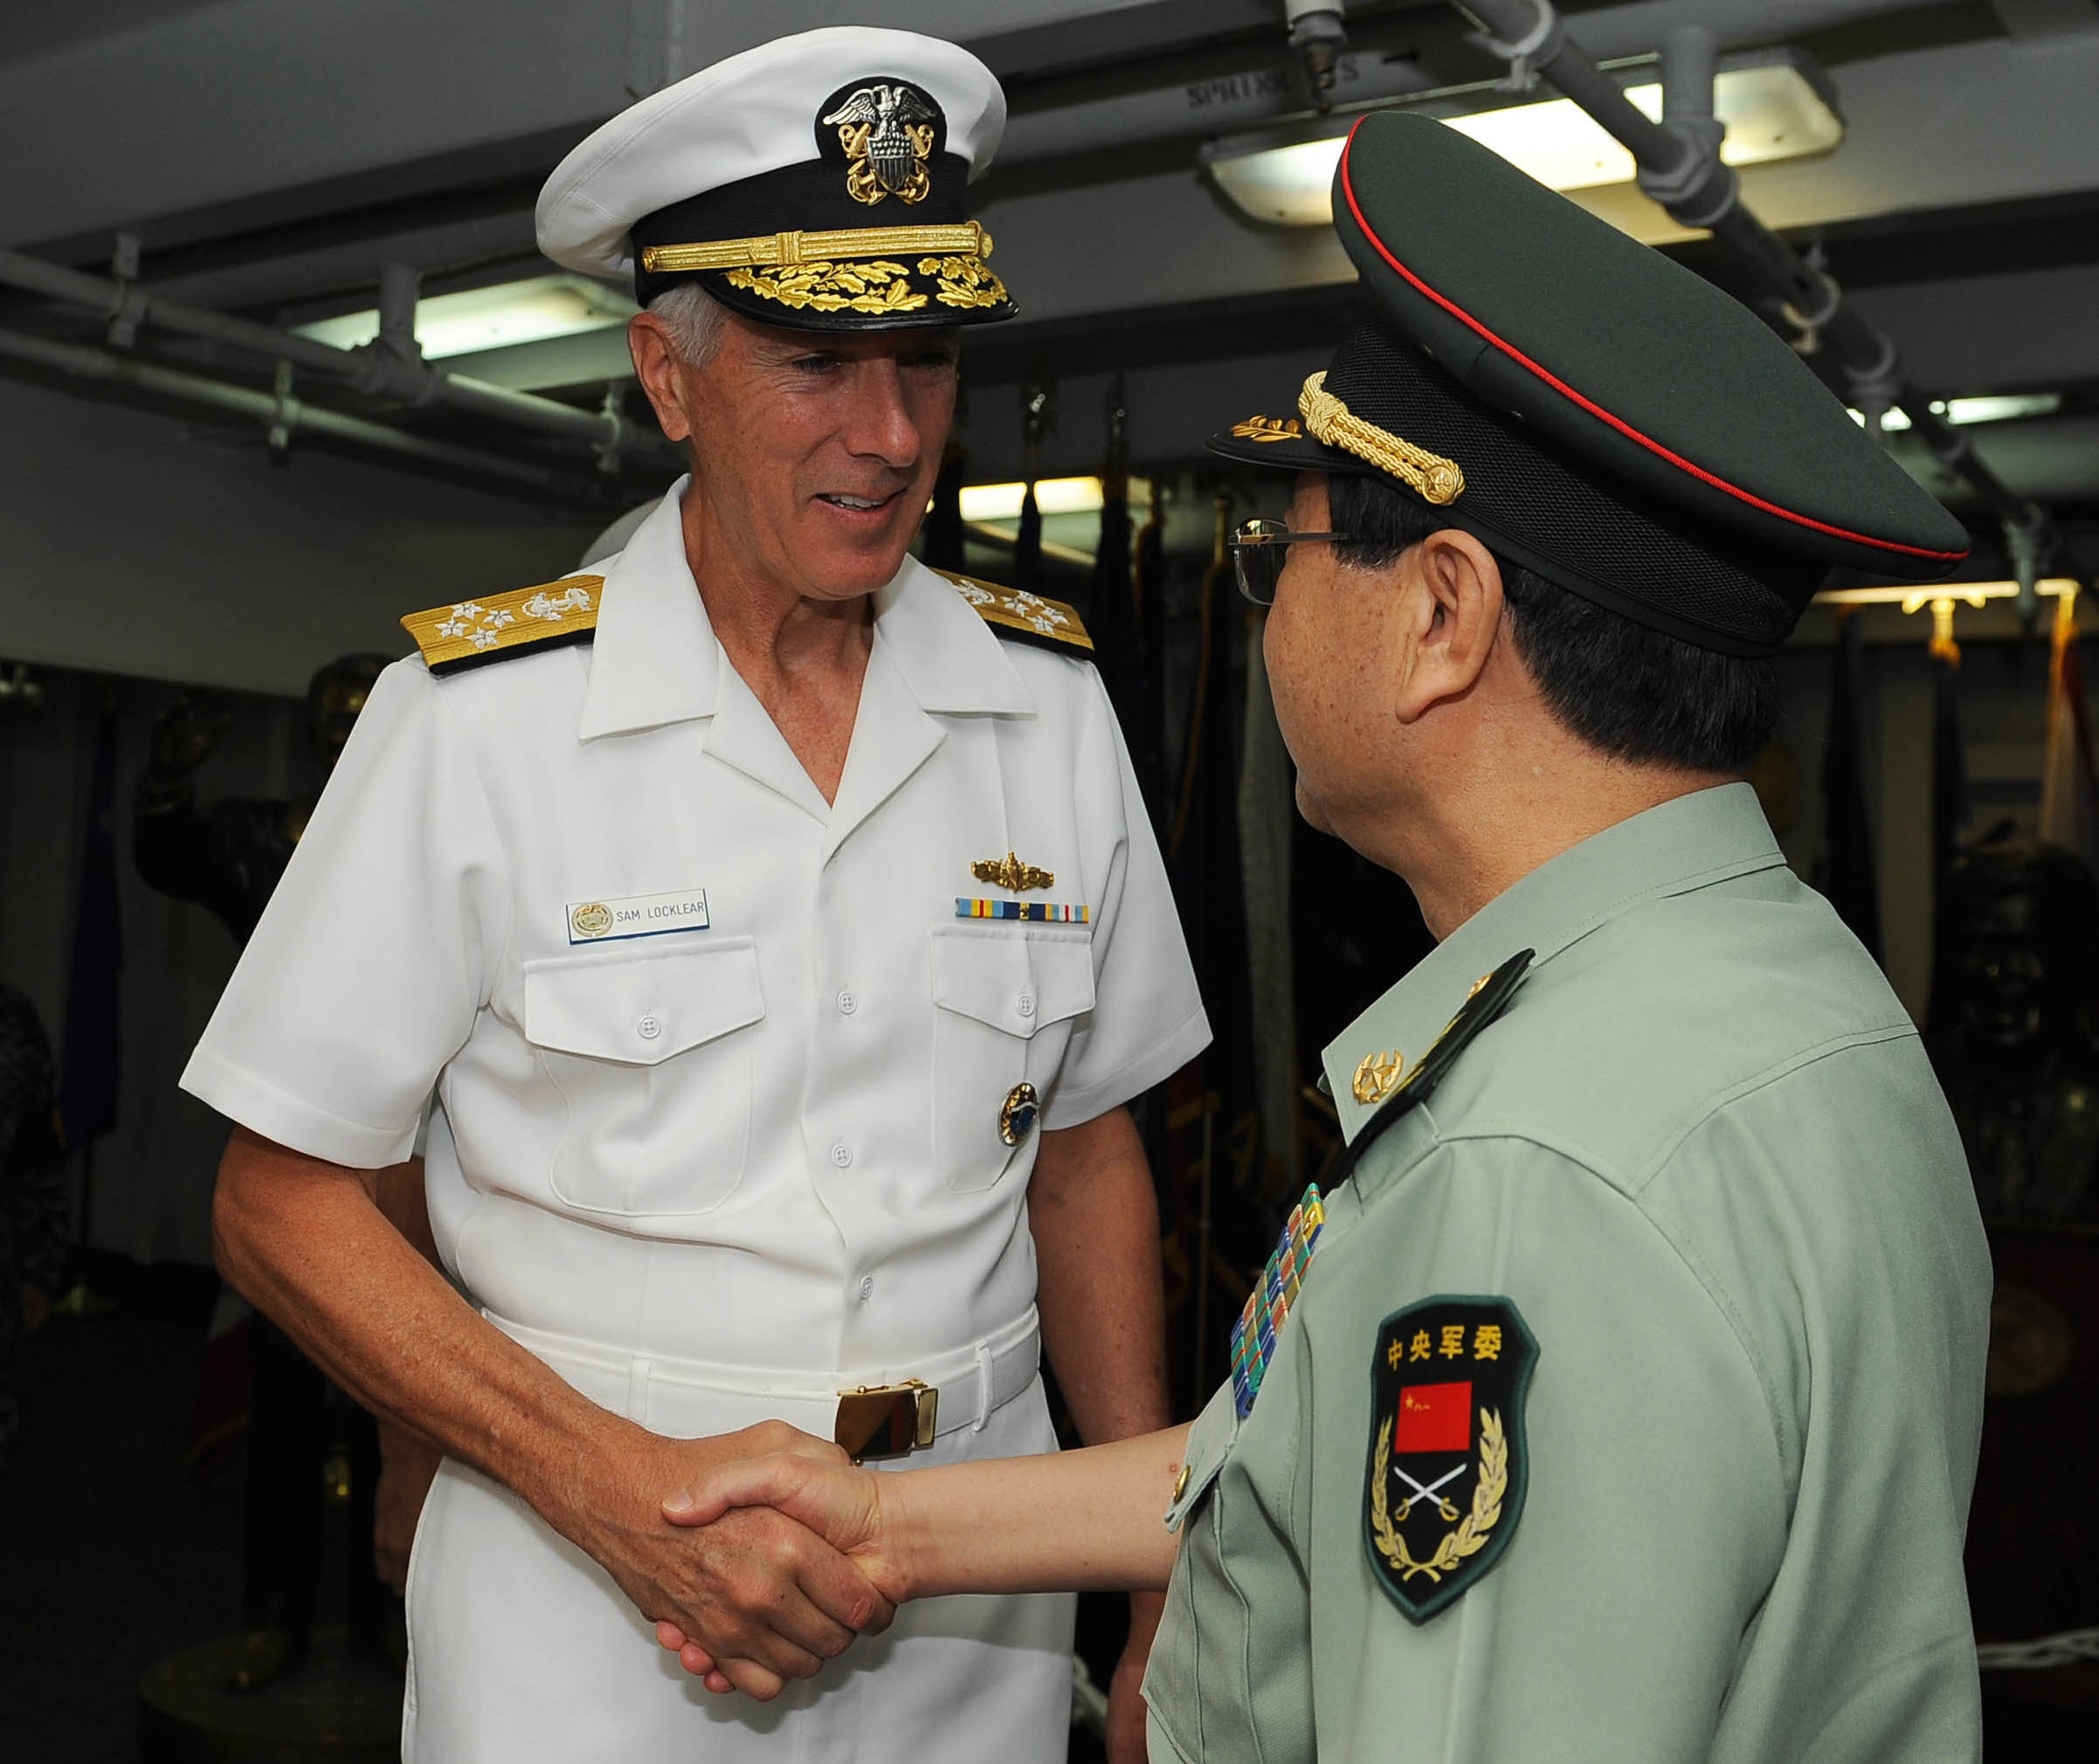 Adm. Samuel J. Locklear, commander of U.S. Pacific Command, greets Chief of the General Staff of the People's Republic of China Gen. Fang Fenghui aboard the aircraft carrier USS Ronald Reagan (CVN-76) on May 13, 2014. US Navy Photo